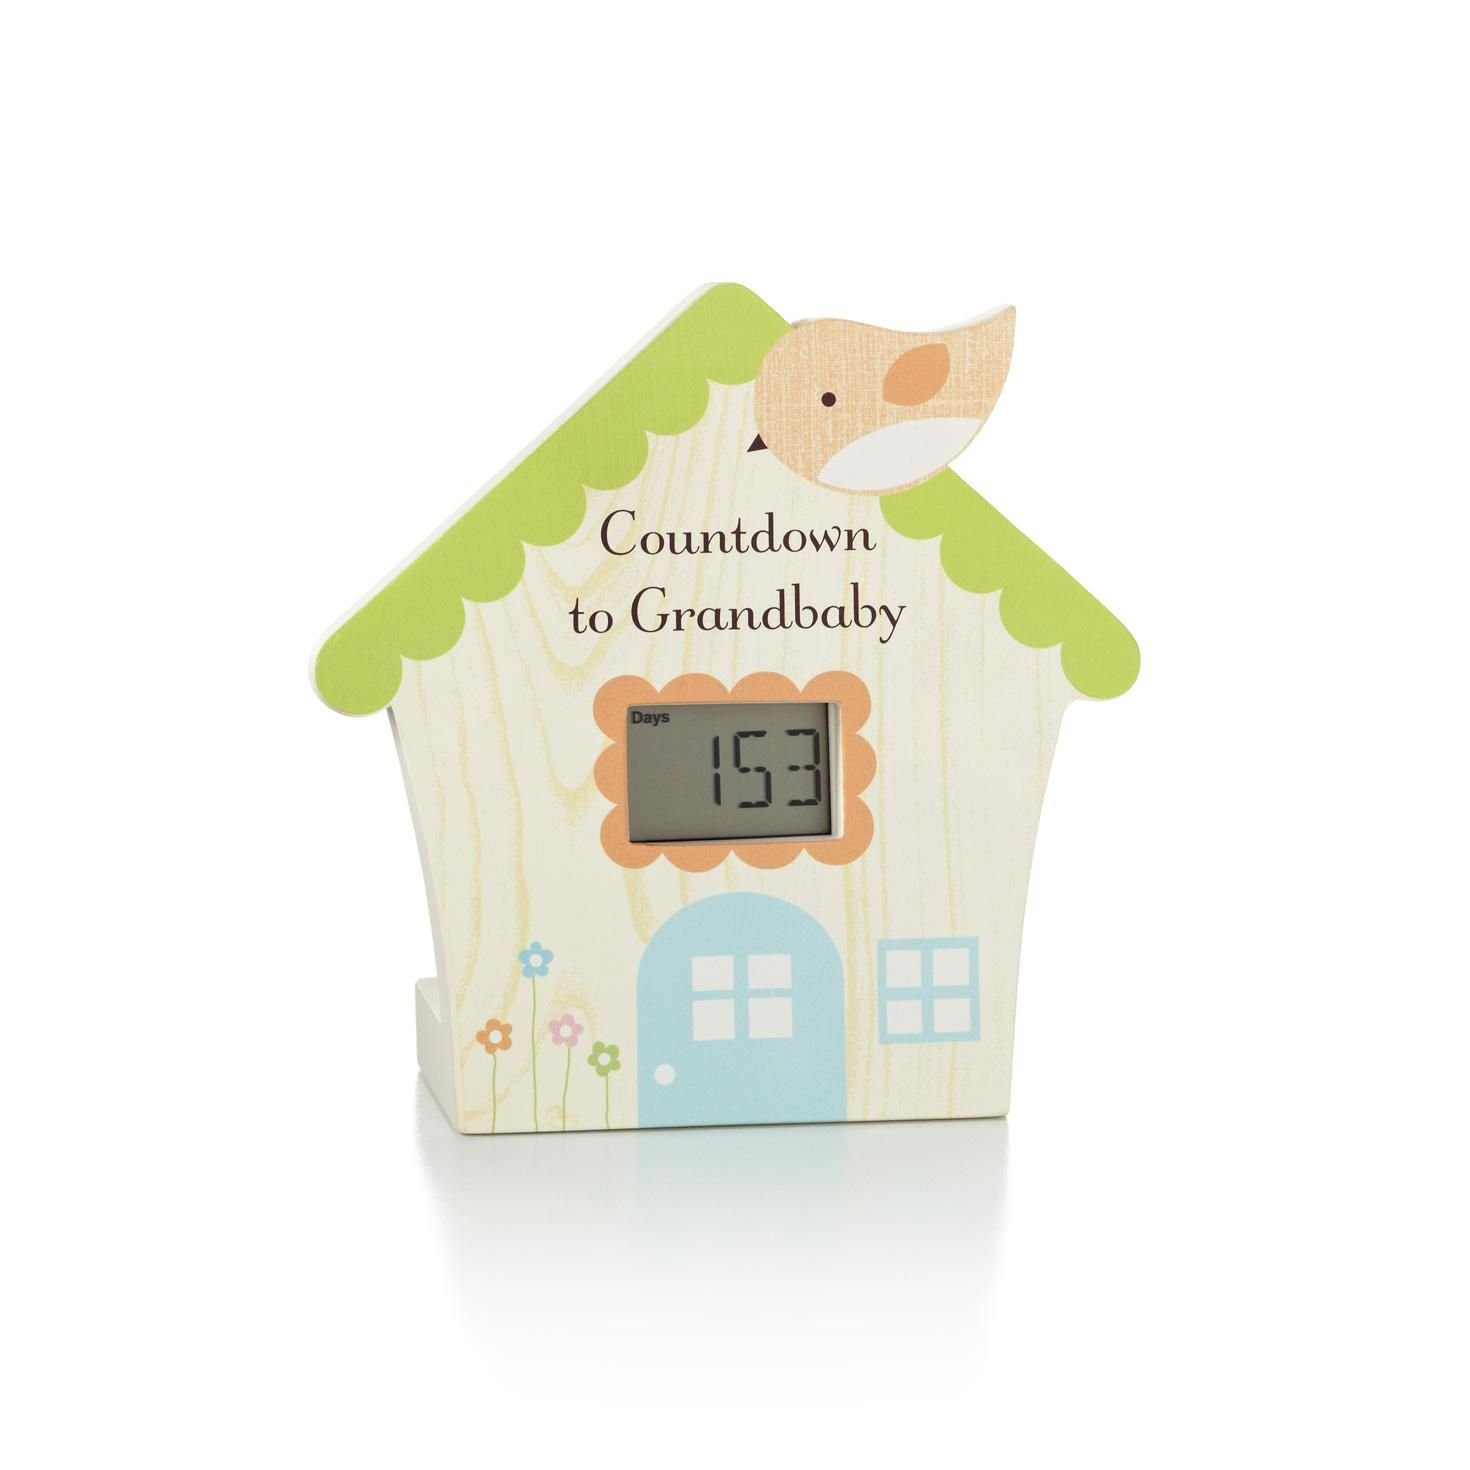 Grandbaby Digital Countdown Clock – General Calendar Mitrinty Count Down Calendar